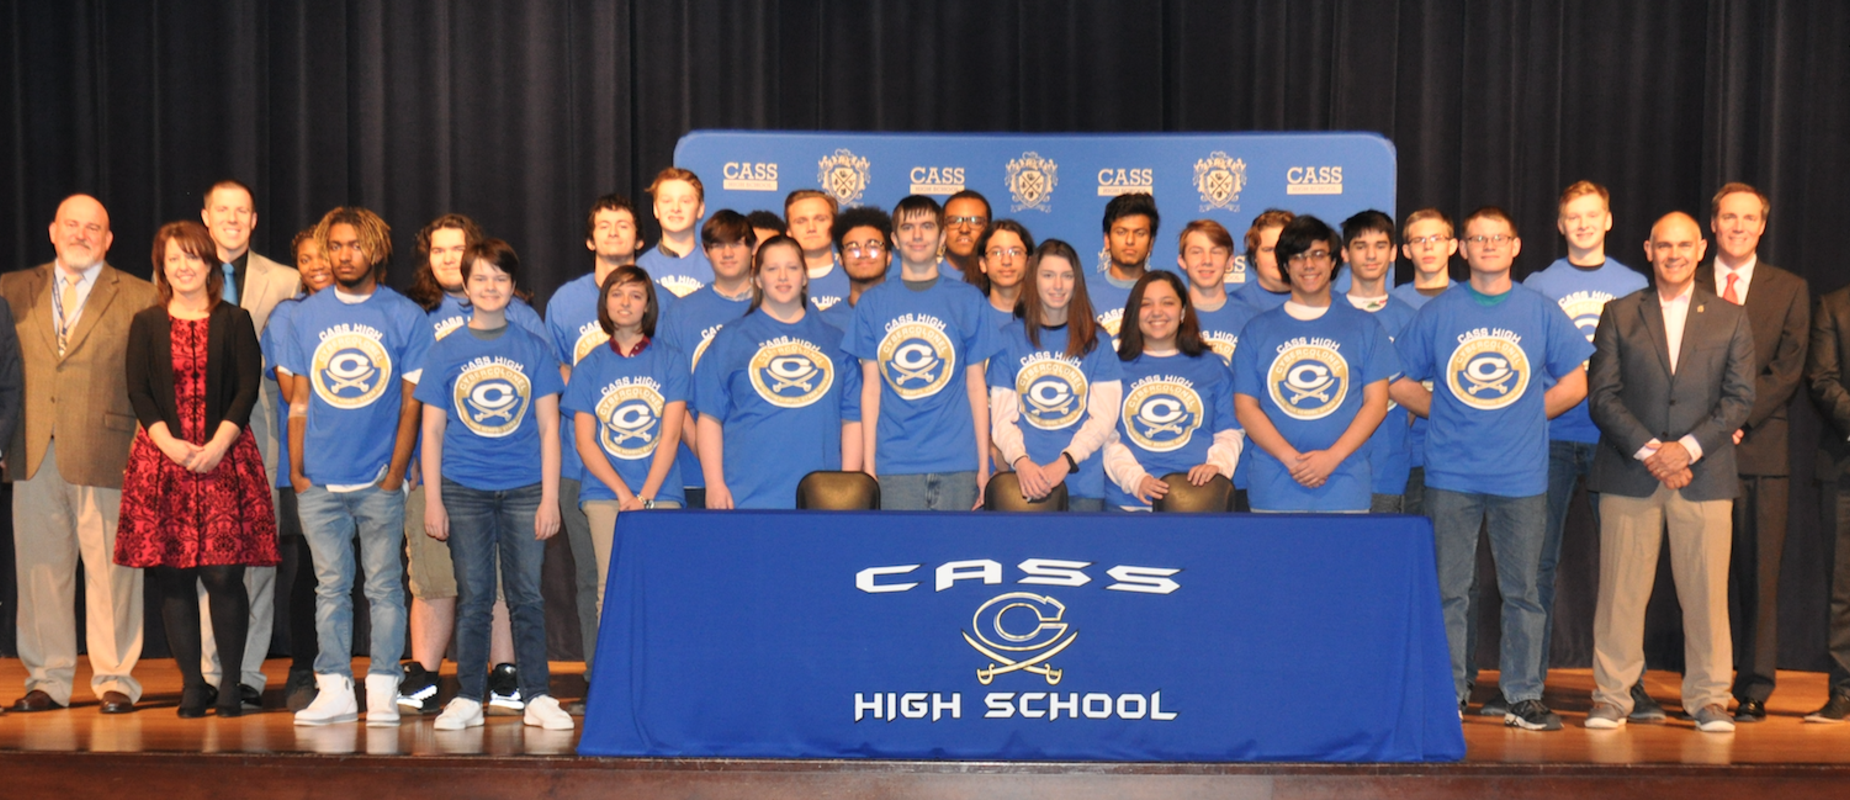 Cybersecurity cohort at Cass High School